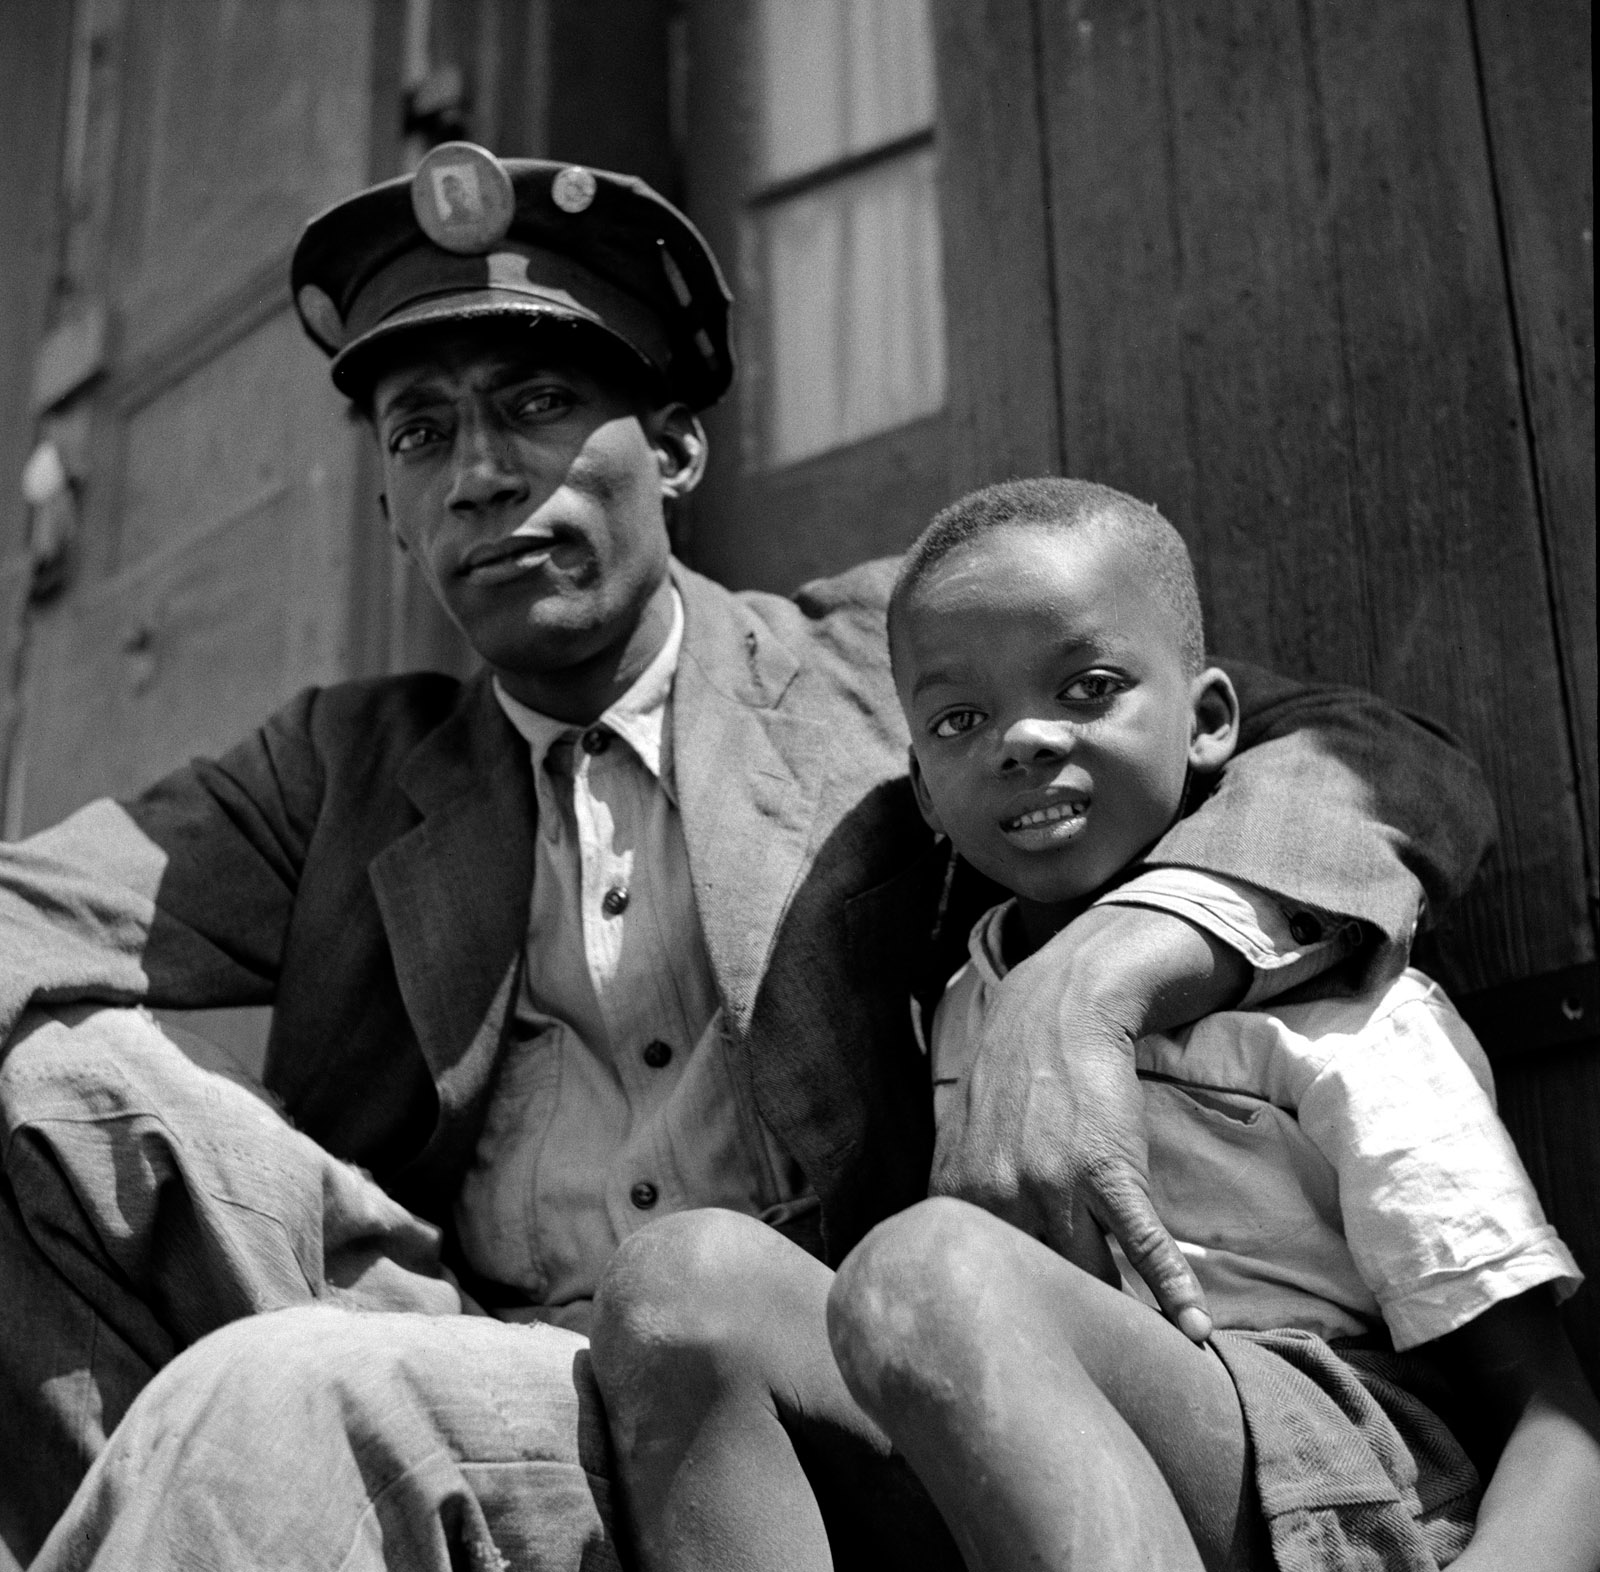 Dock worker and his son, New Orleans, March 1943